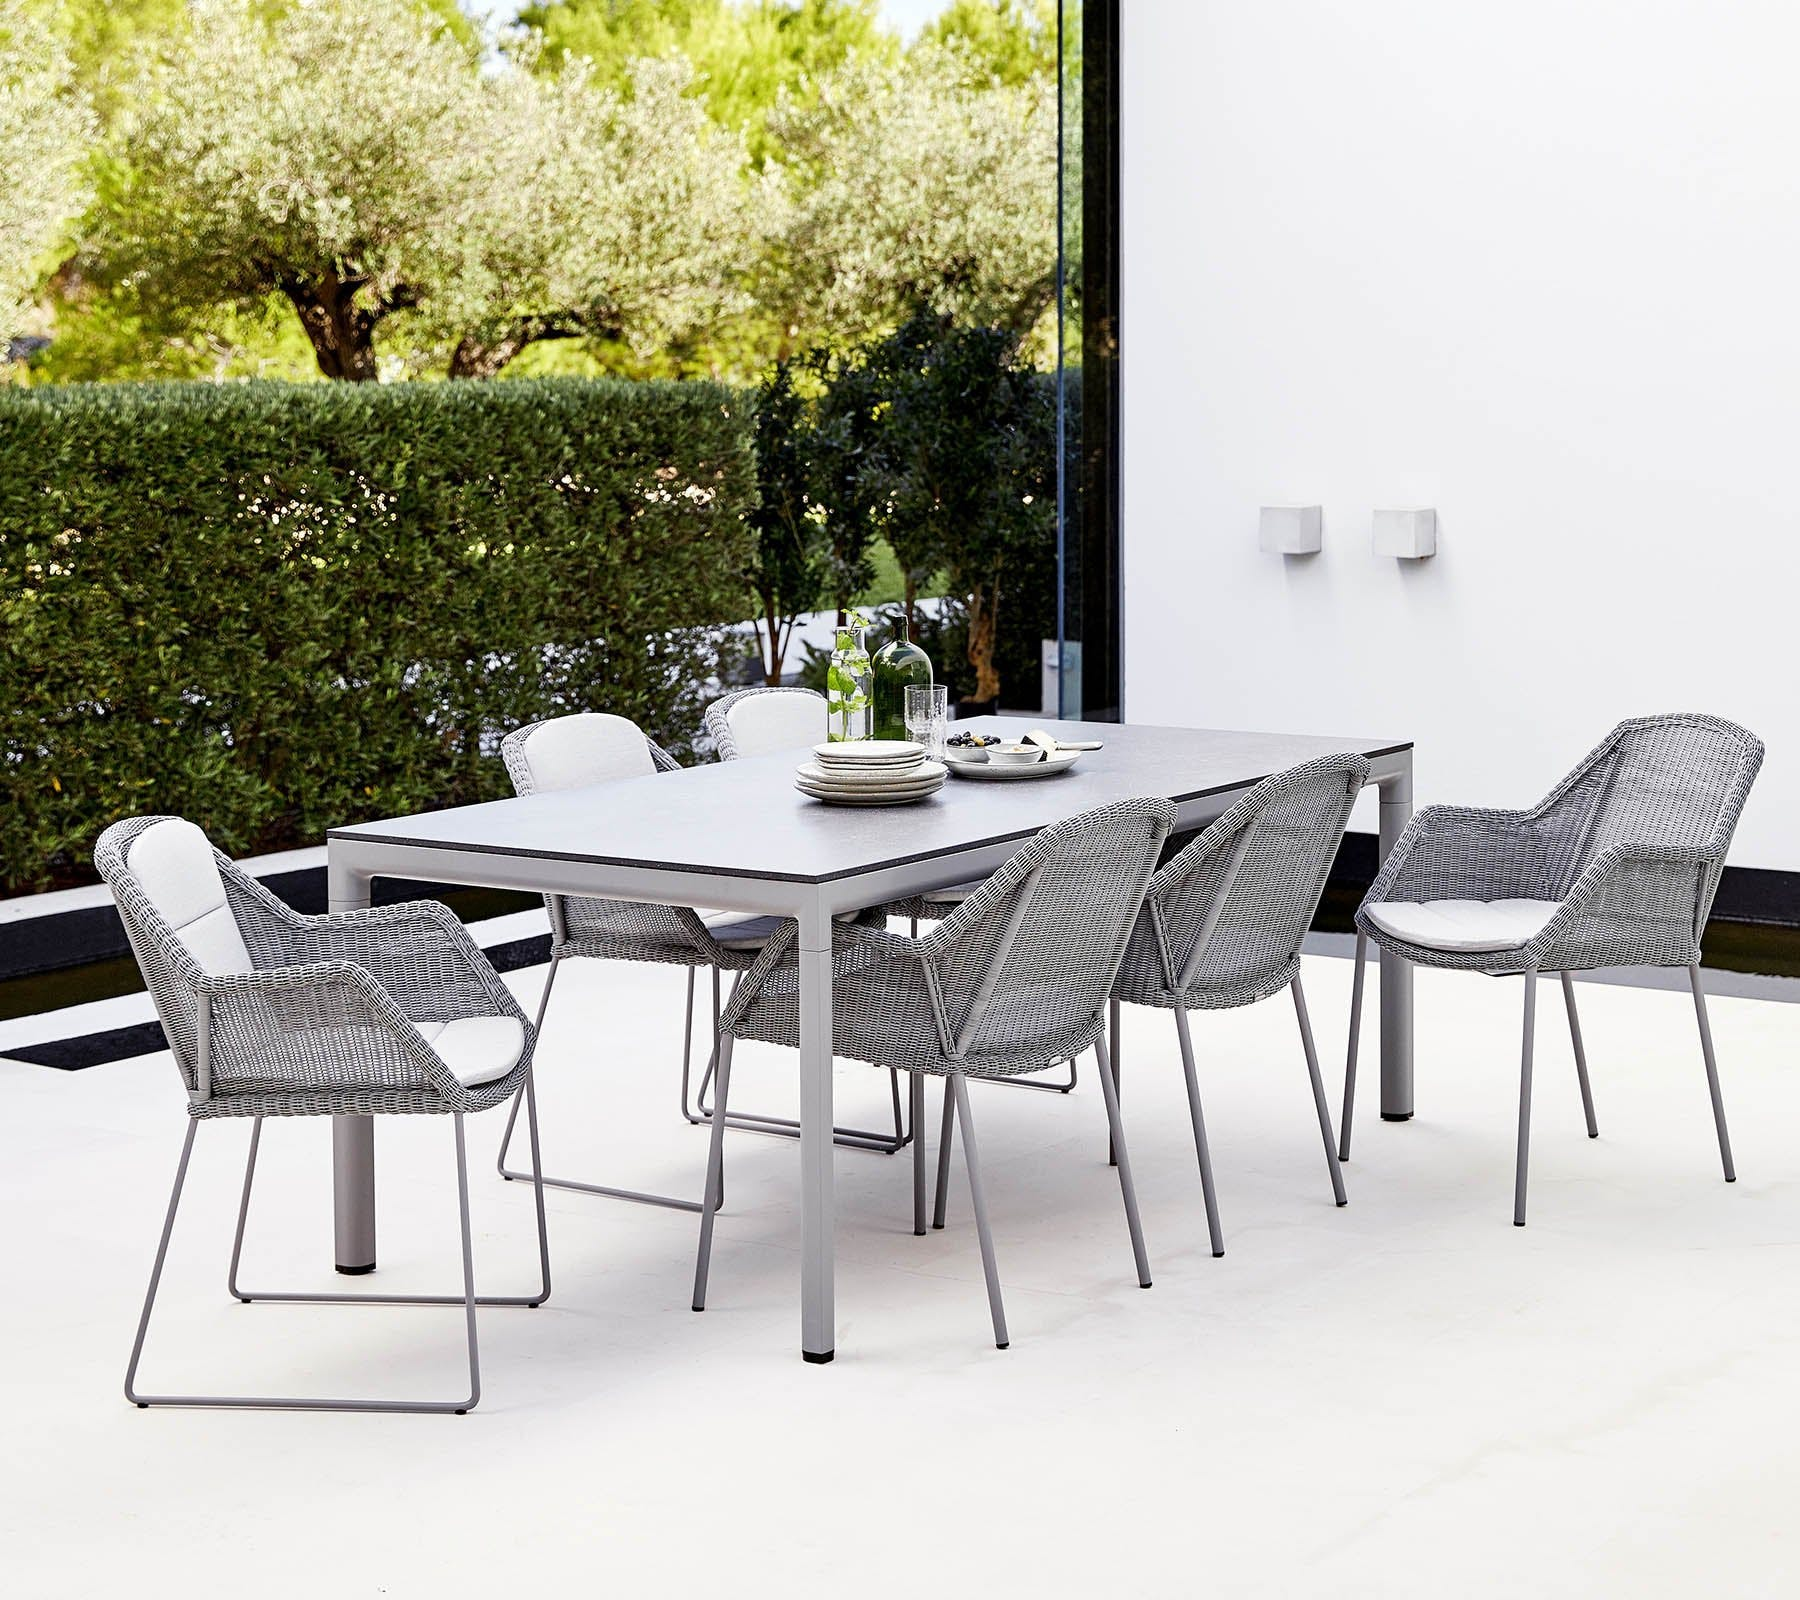 Cane-line-long-grey-drop-table-institu-haute-living